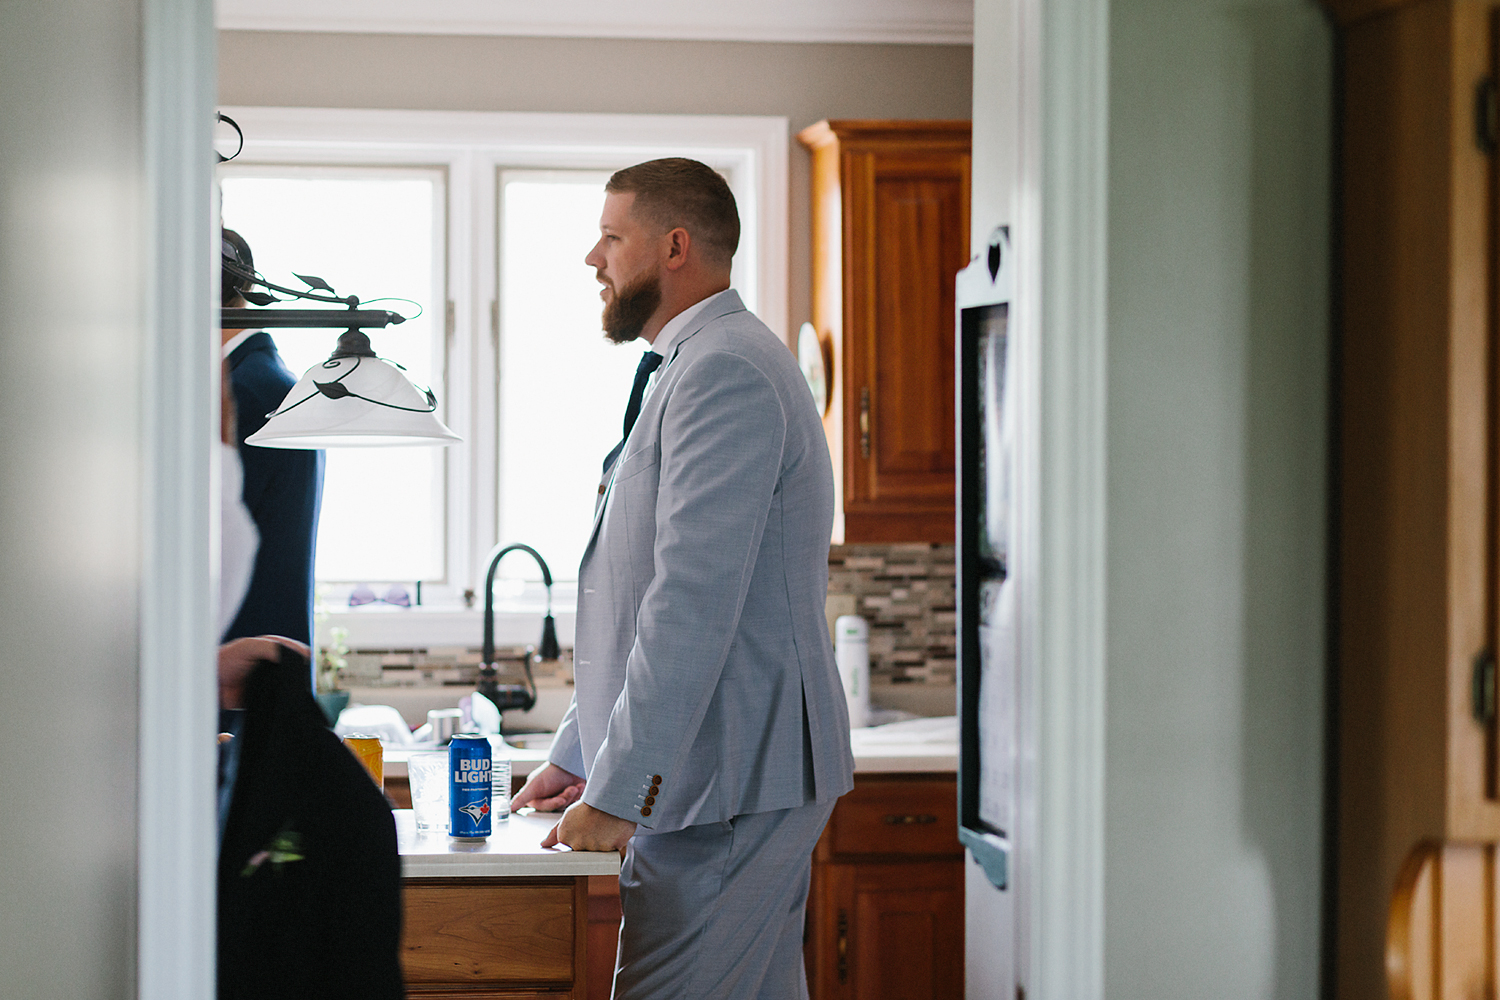 Alternative-Toronto-Wedding-Photographers-Photojournalistic-Wedding-Photography-in-Toronto-Ryanne-Hollies-Photography-candid-documentary-bradford-newmarket-groom-getting-ready-drinking-beer.jpg